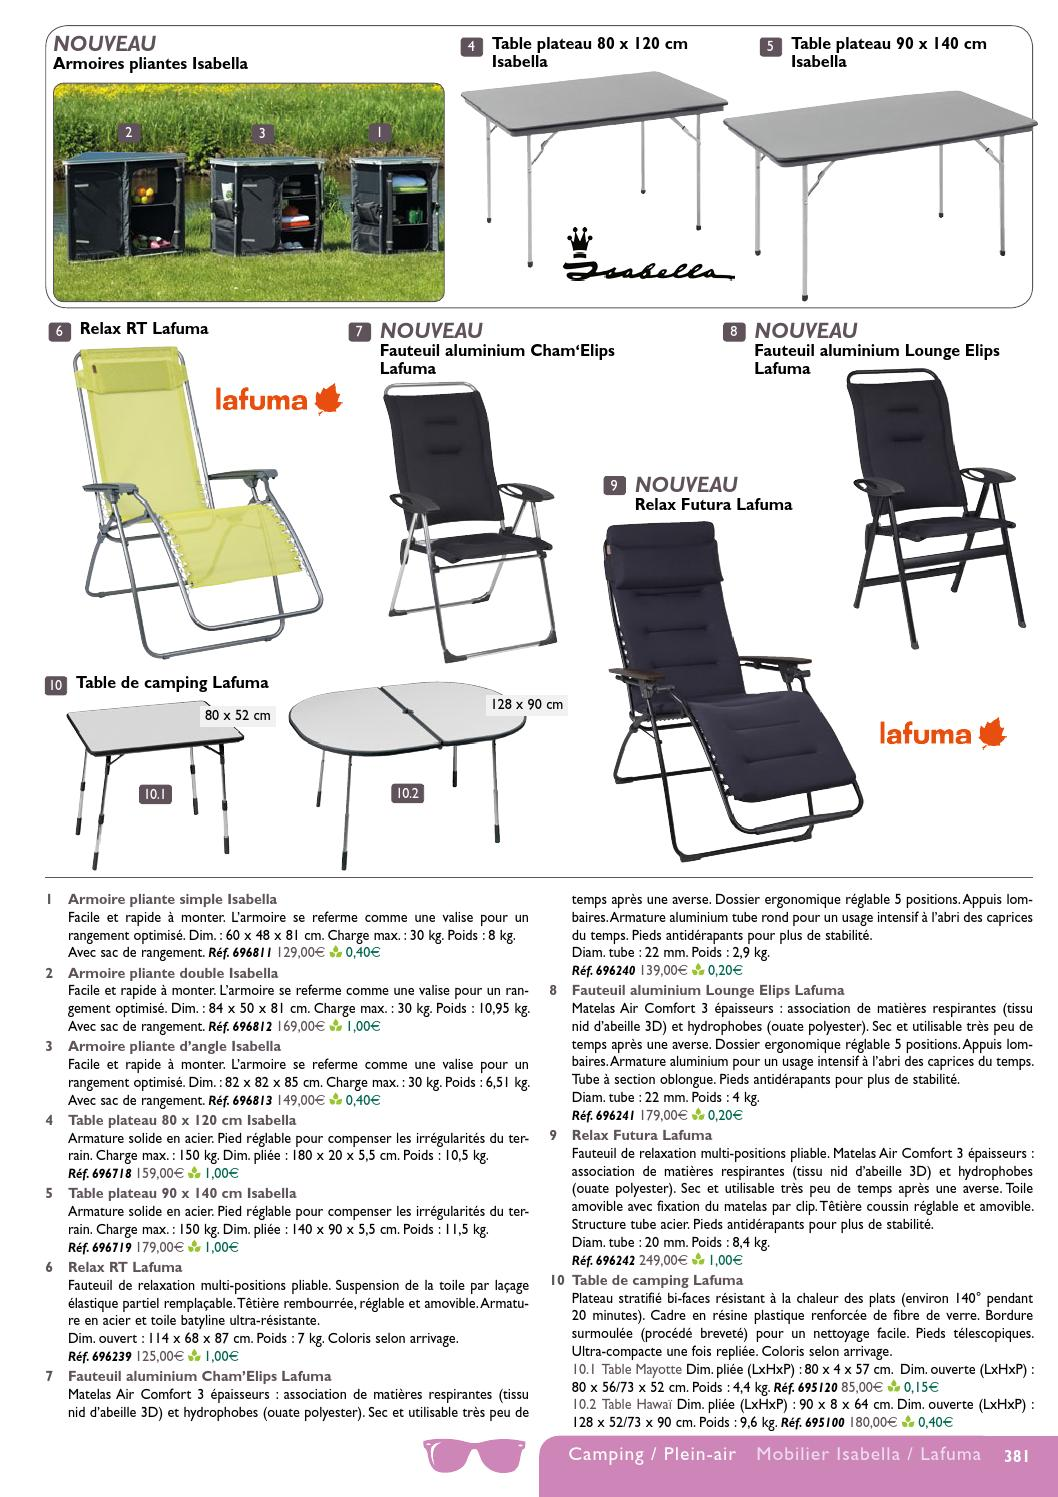 Catalogue 2014 narbonne accessoires camping plein air by narbonne accesso - Rangement valise optimise ...